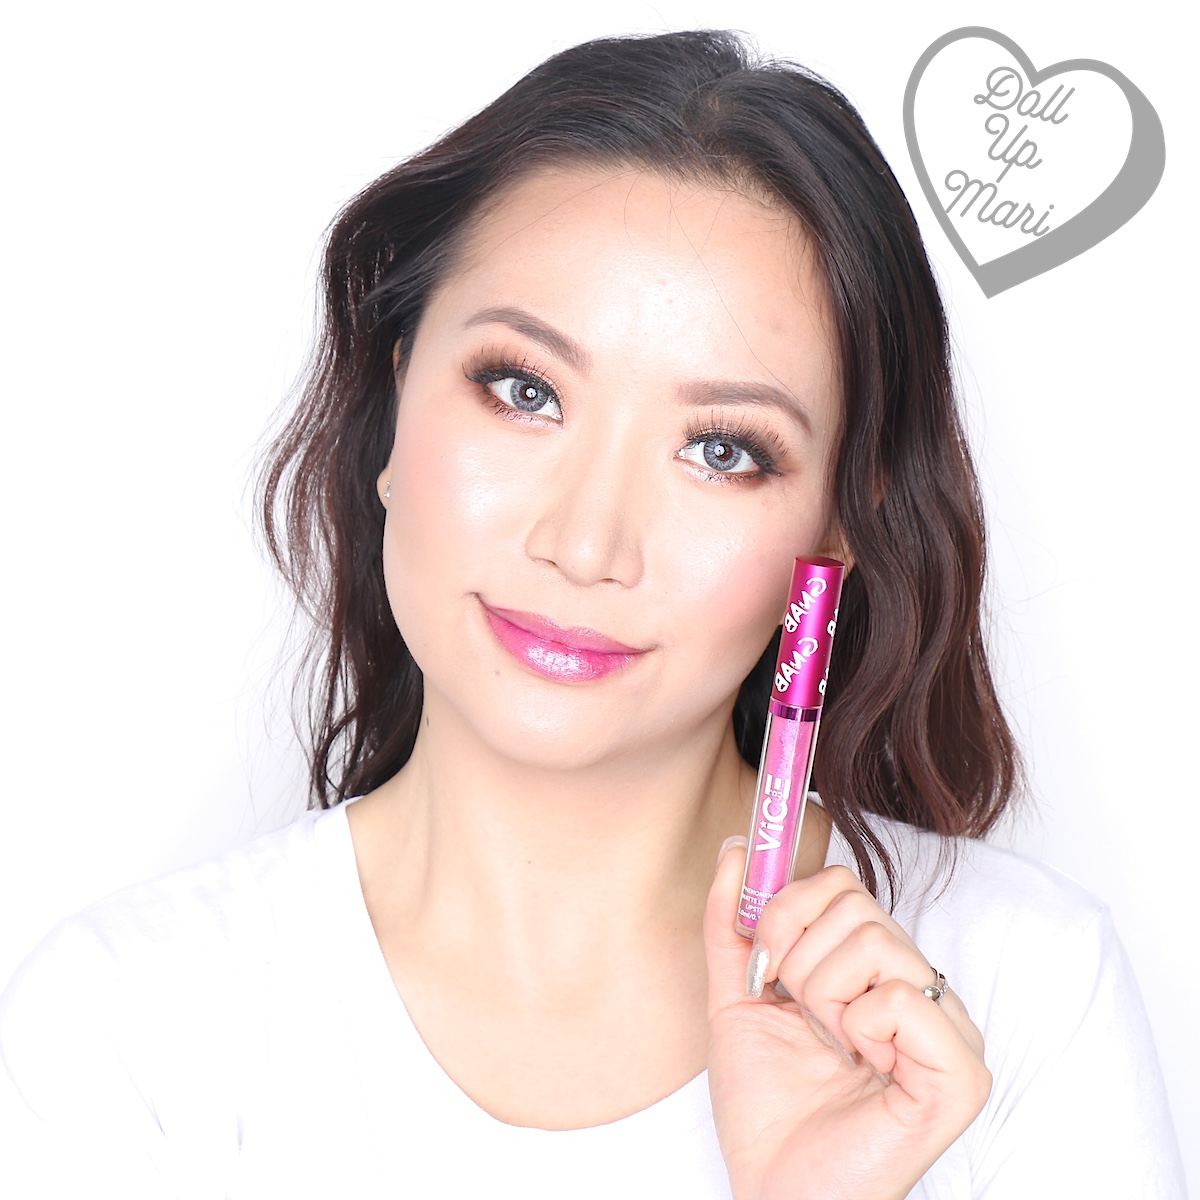 Mari wearing the Glitter Topper of the Mowdel set of Vice X Bang Lip set collection